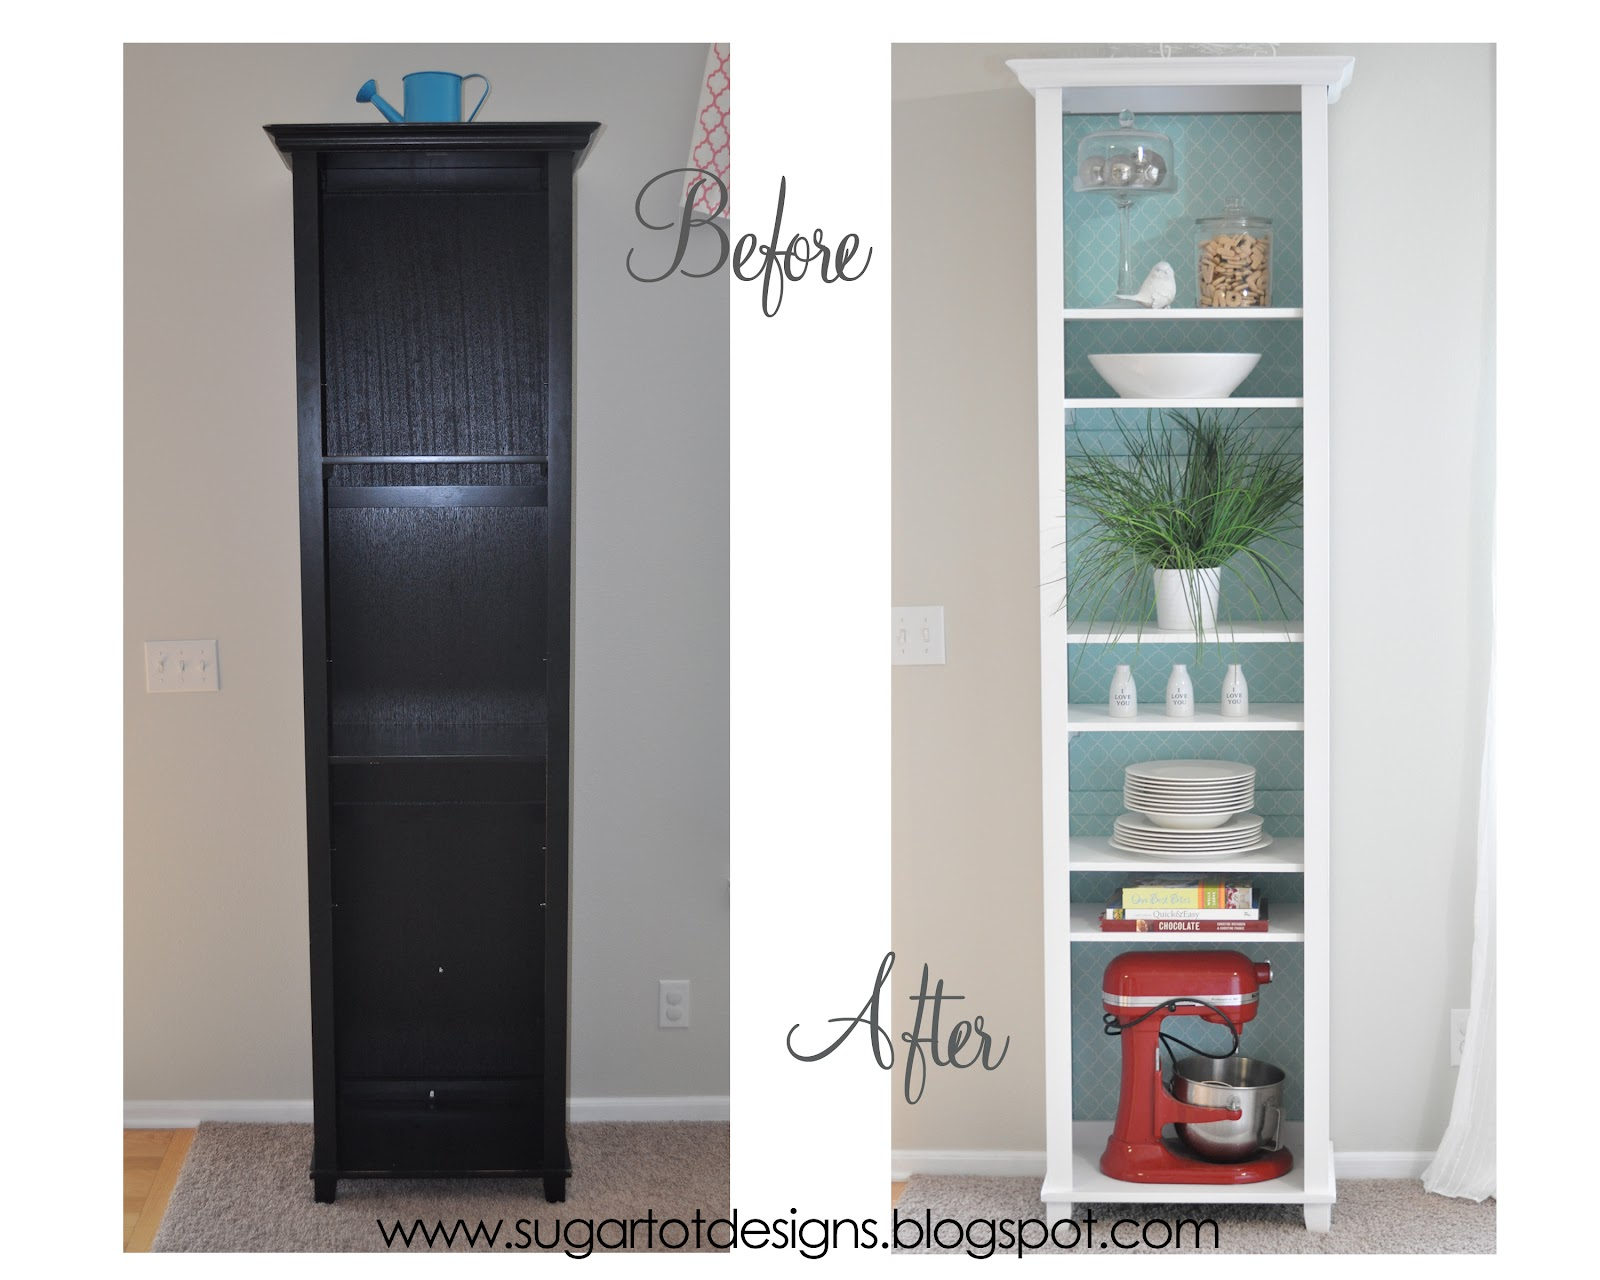 Sugartotdesigns White Bookshelf Makeover With Removable Lining